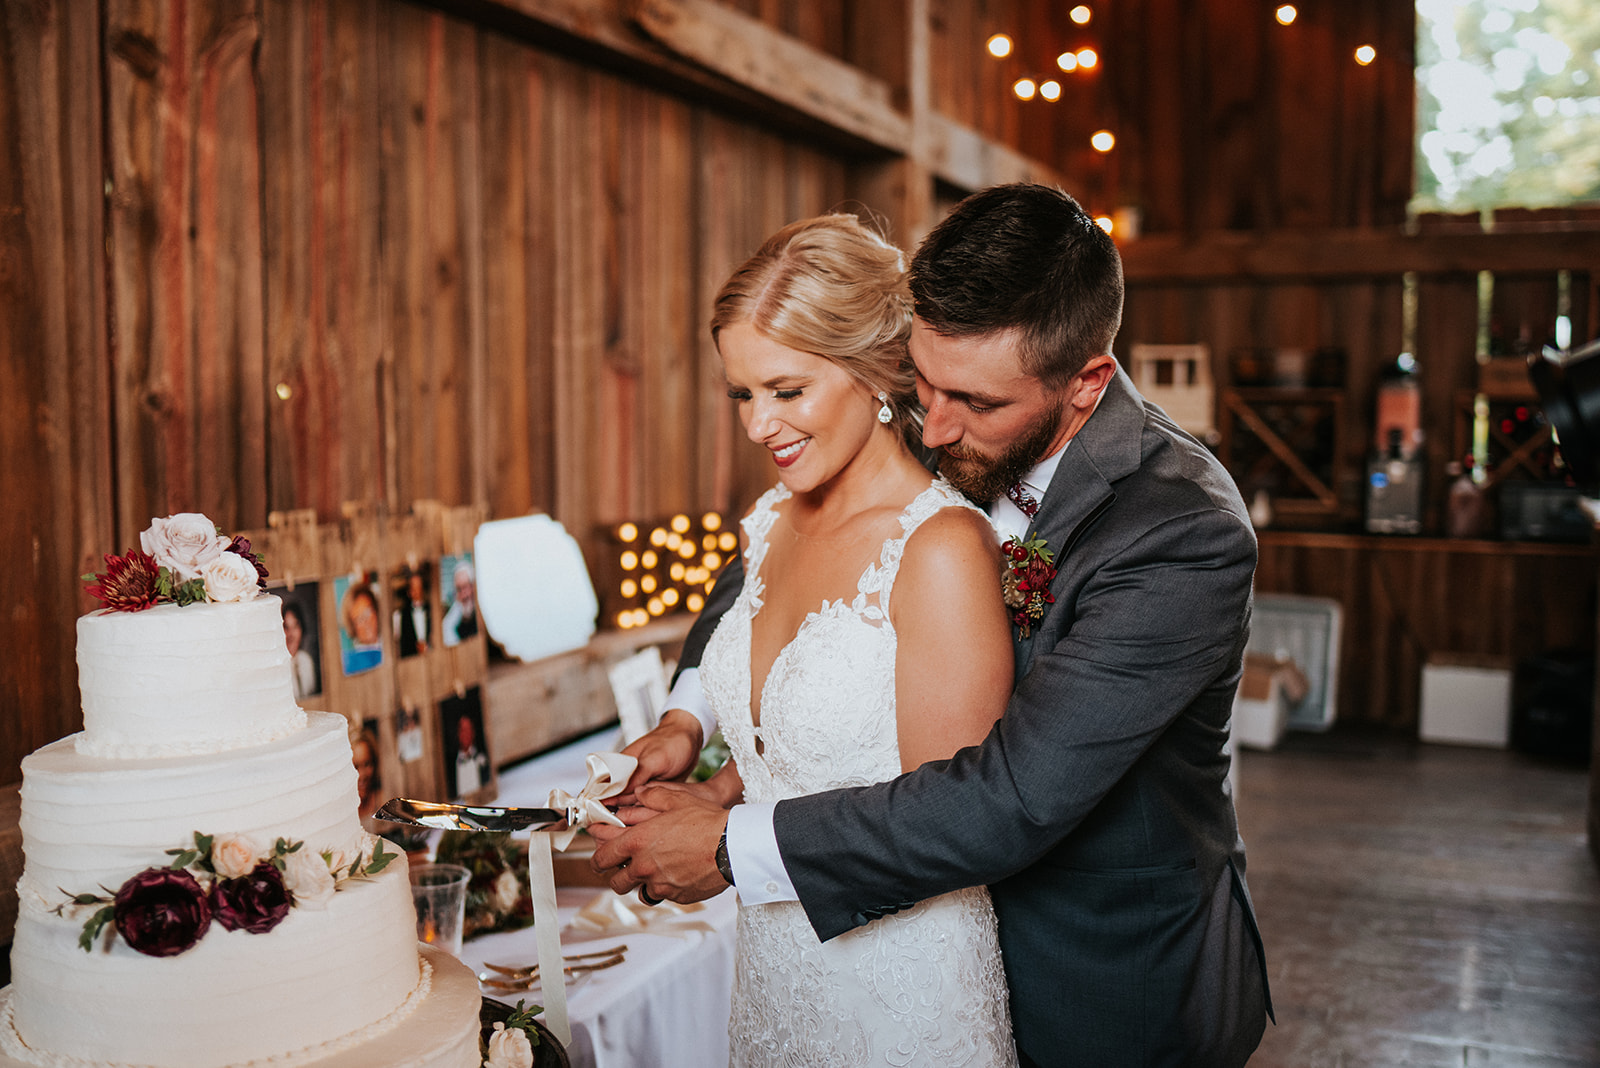 overthevineswisconsinwedding_1182.jpg